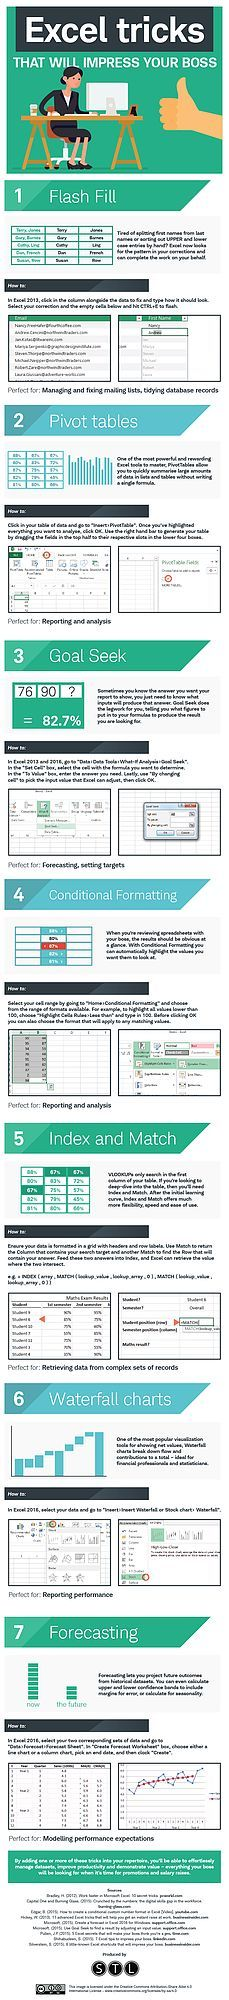 Microsoft Excel is packed with useful data management features that don't see a lot of use, like pivot tables, index and match, and conditional formatting. If you're just using excel to sum and chart